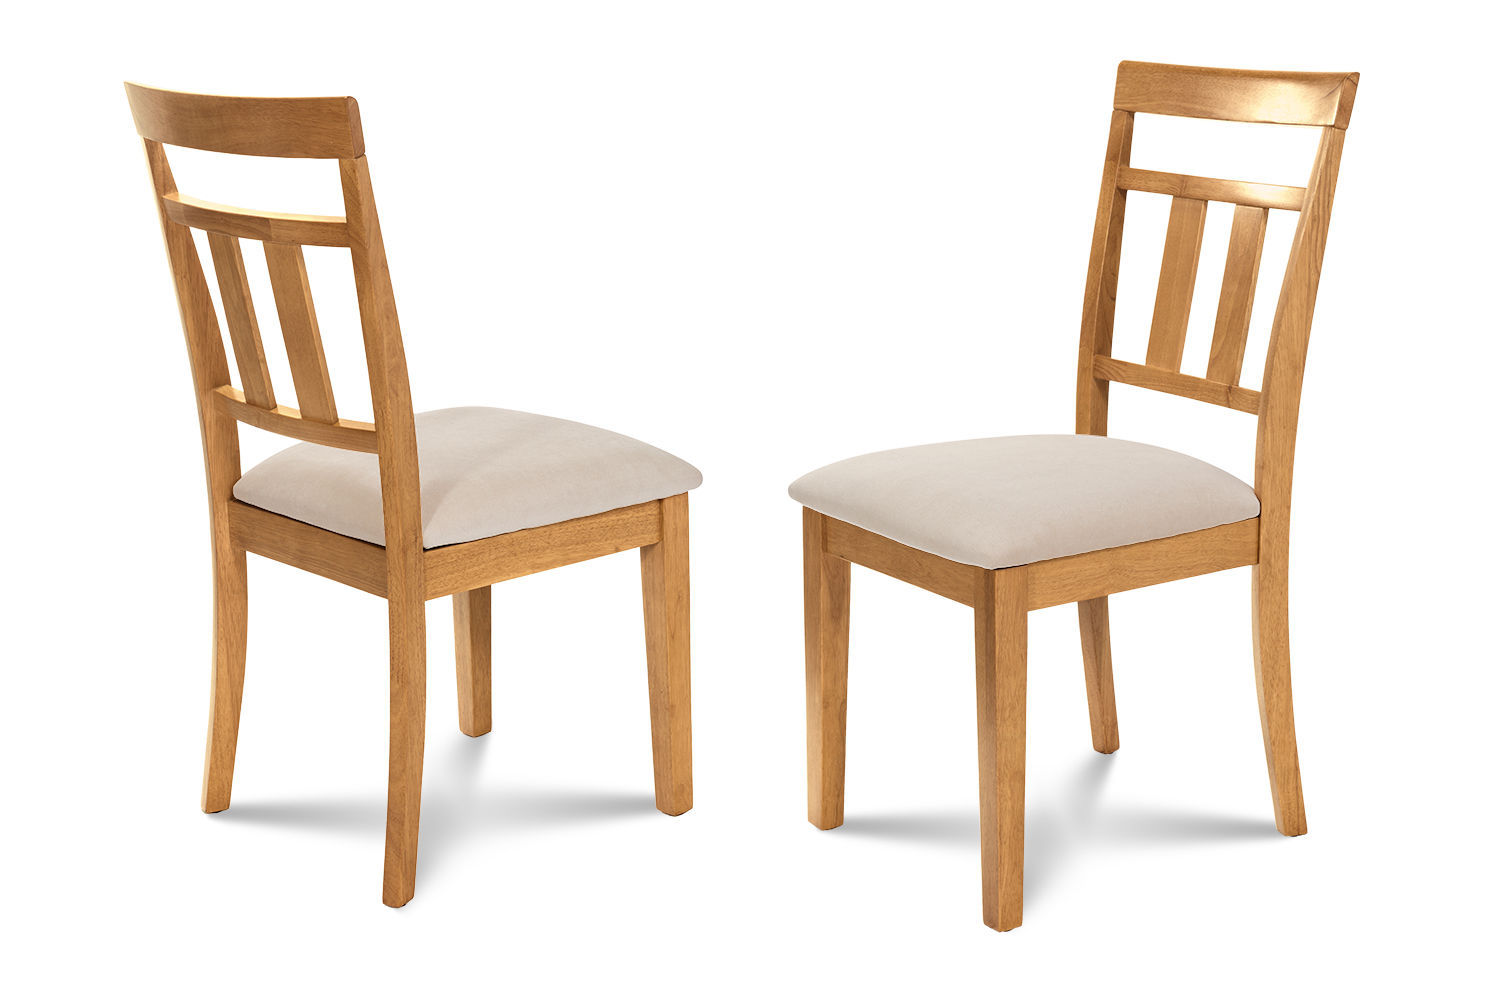 Padded Kitchen Chairs Set Of 2 Kitchen Dining Side Chairs W Soft Padded Seat In